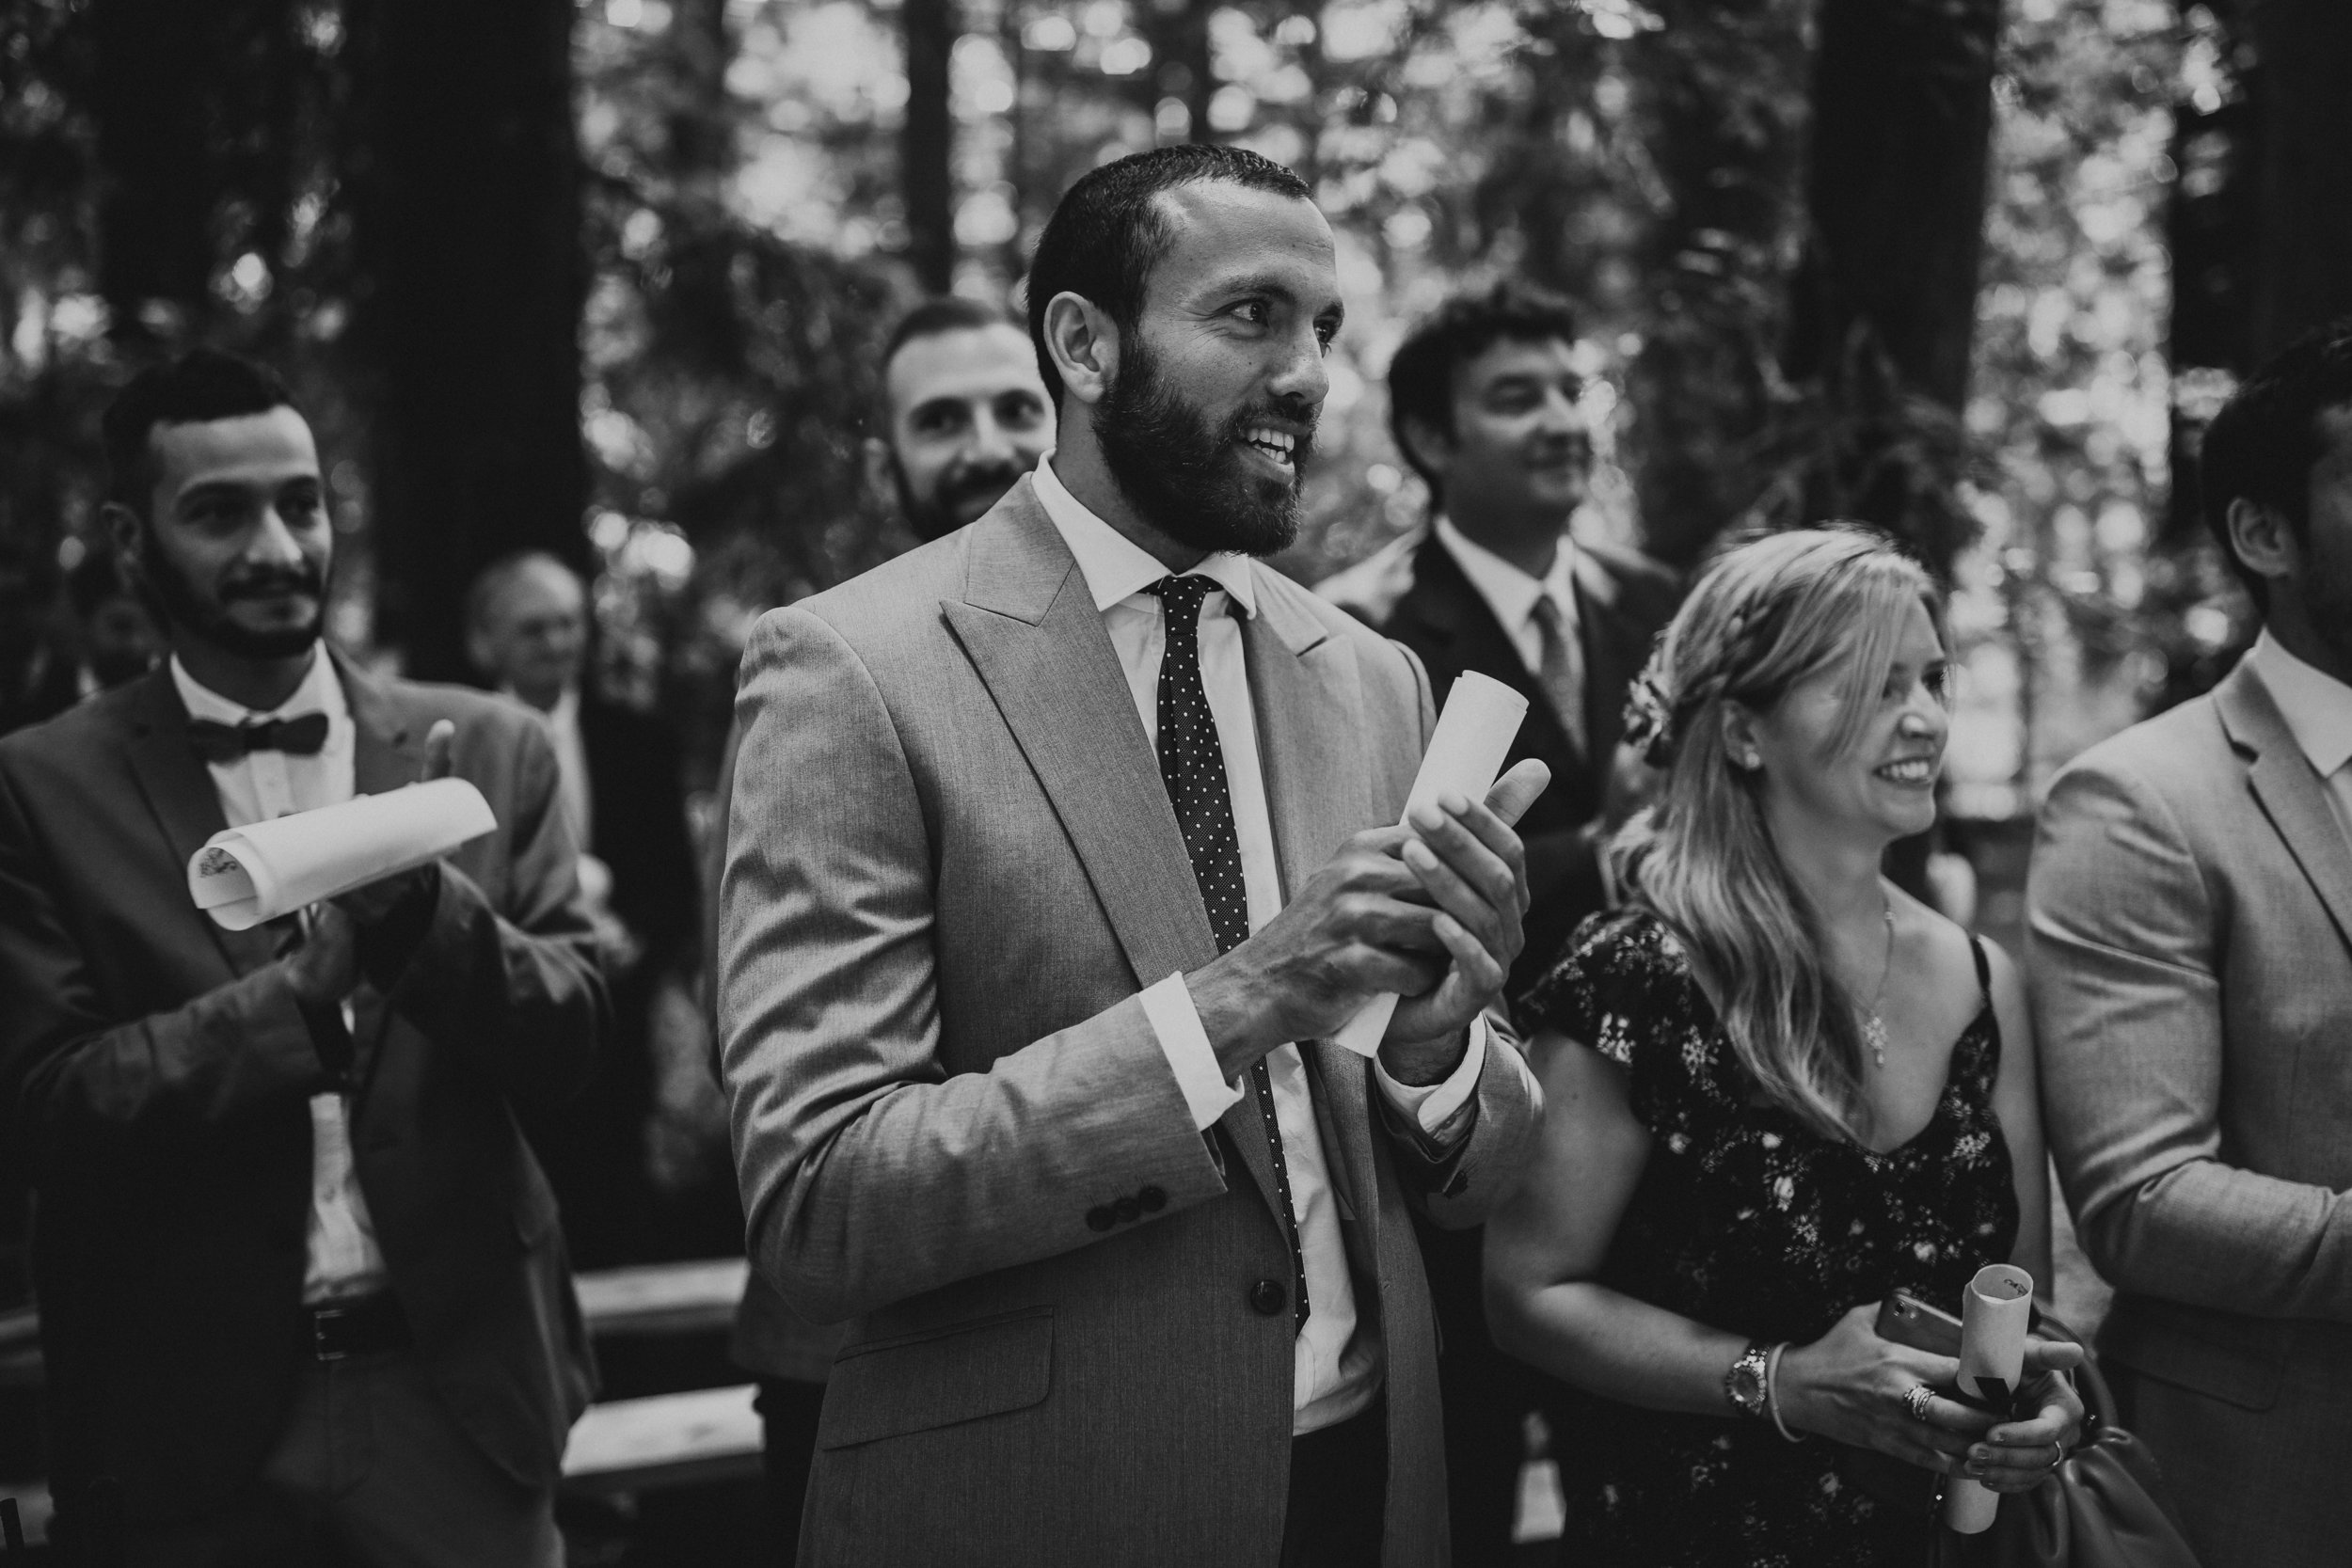 TWO_WOODS_ESTATE_WEDDING_PULBOROUGH_PJ_PHILLIPS_PHOTOGRAPHY_FRAN_&_GEORGE_87.jpg